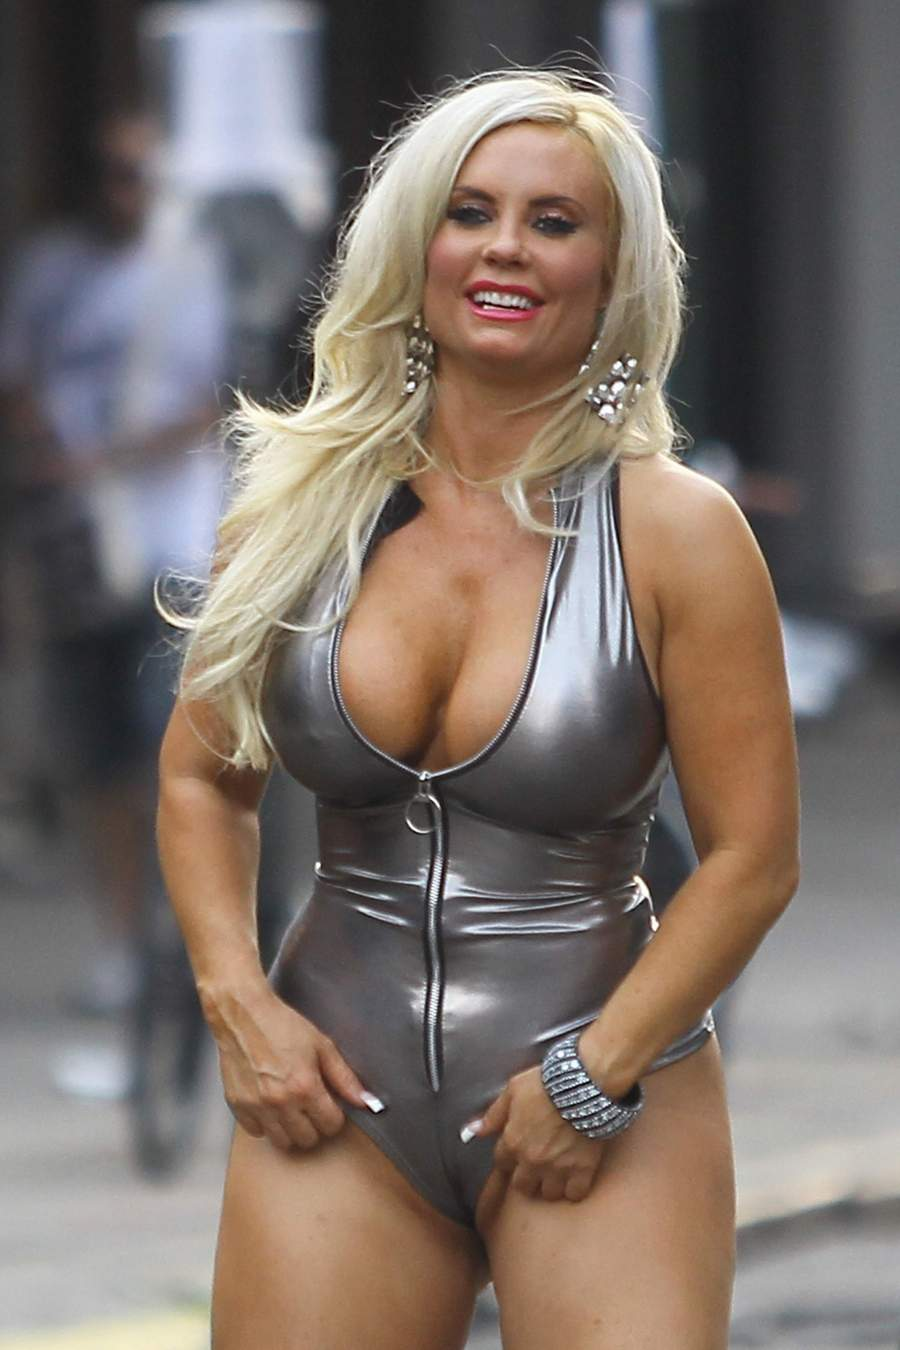 Nicole Coco Austin nudes (31 photo), hot Fappening, Snapchat, swimsuit 2015